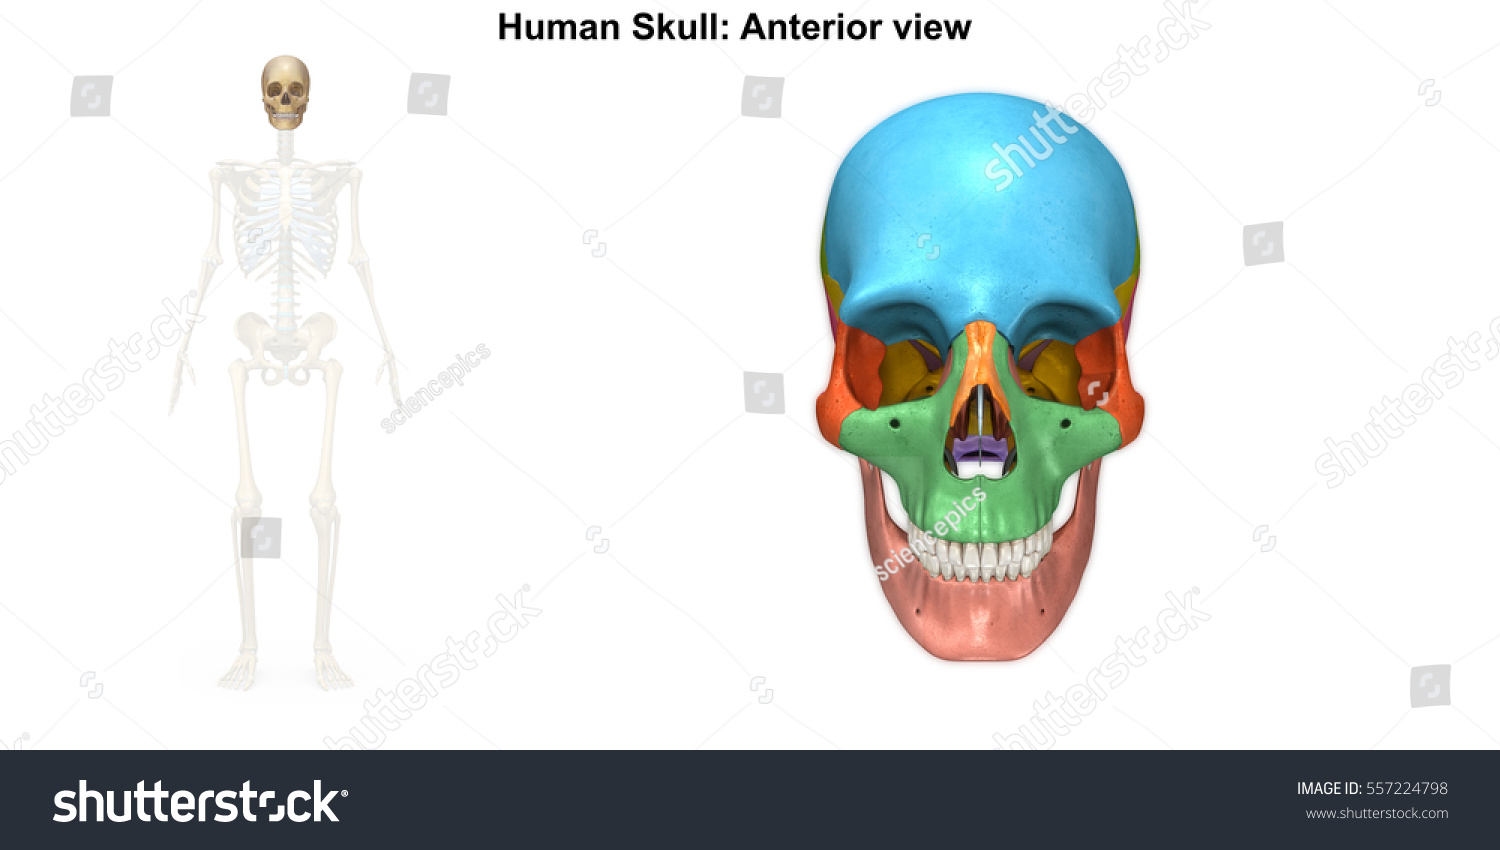 Human Skull Anterior View 3 D Illustration Stock Illustration ...